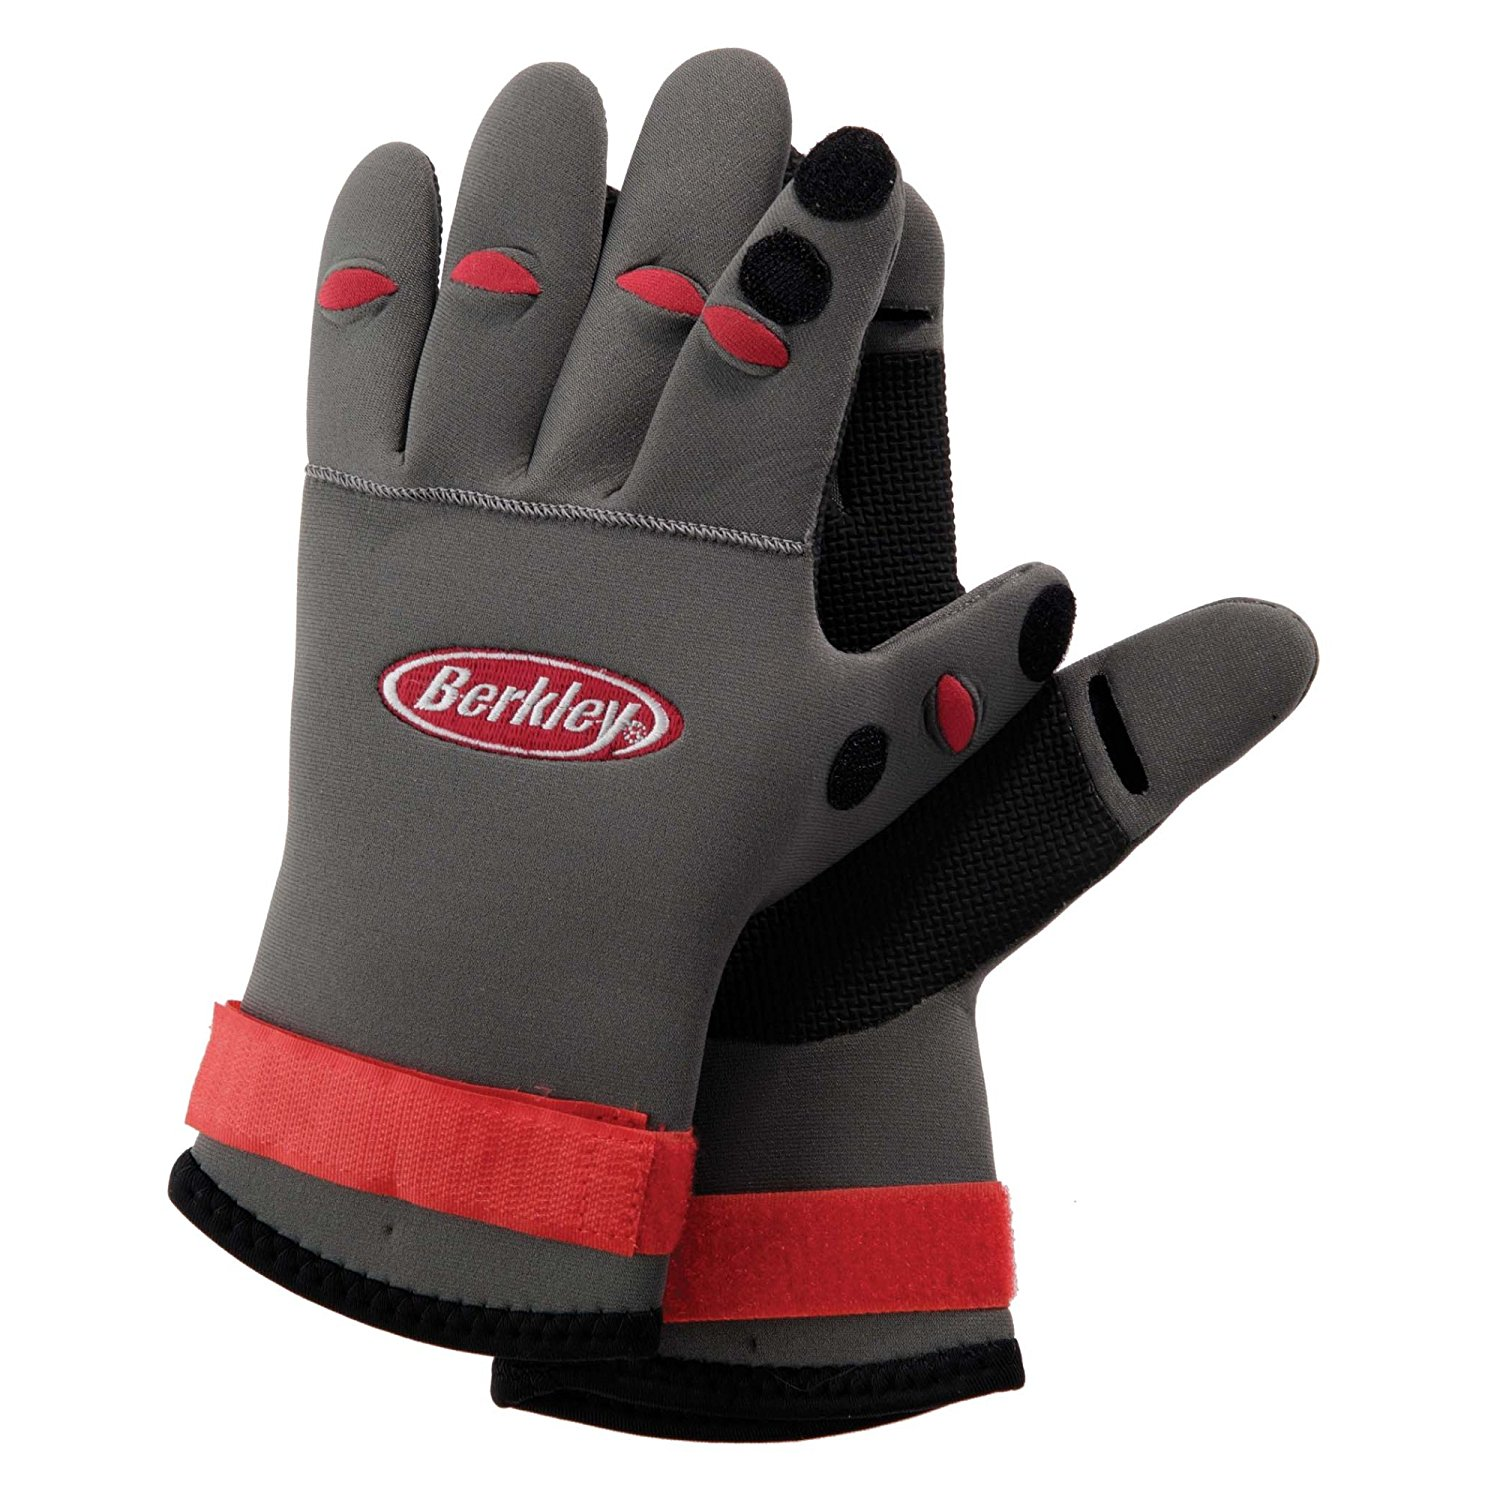 Berkley Neoprene Fishing Gloves